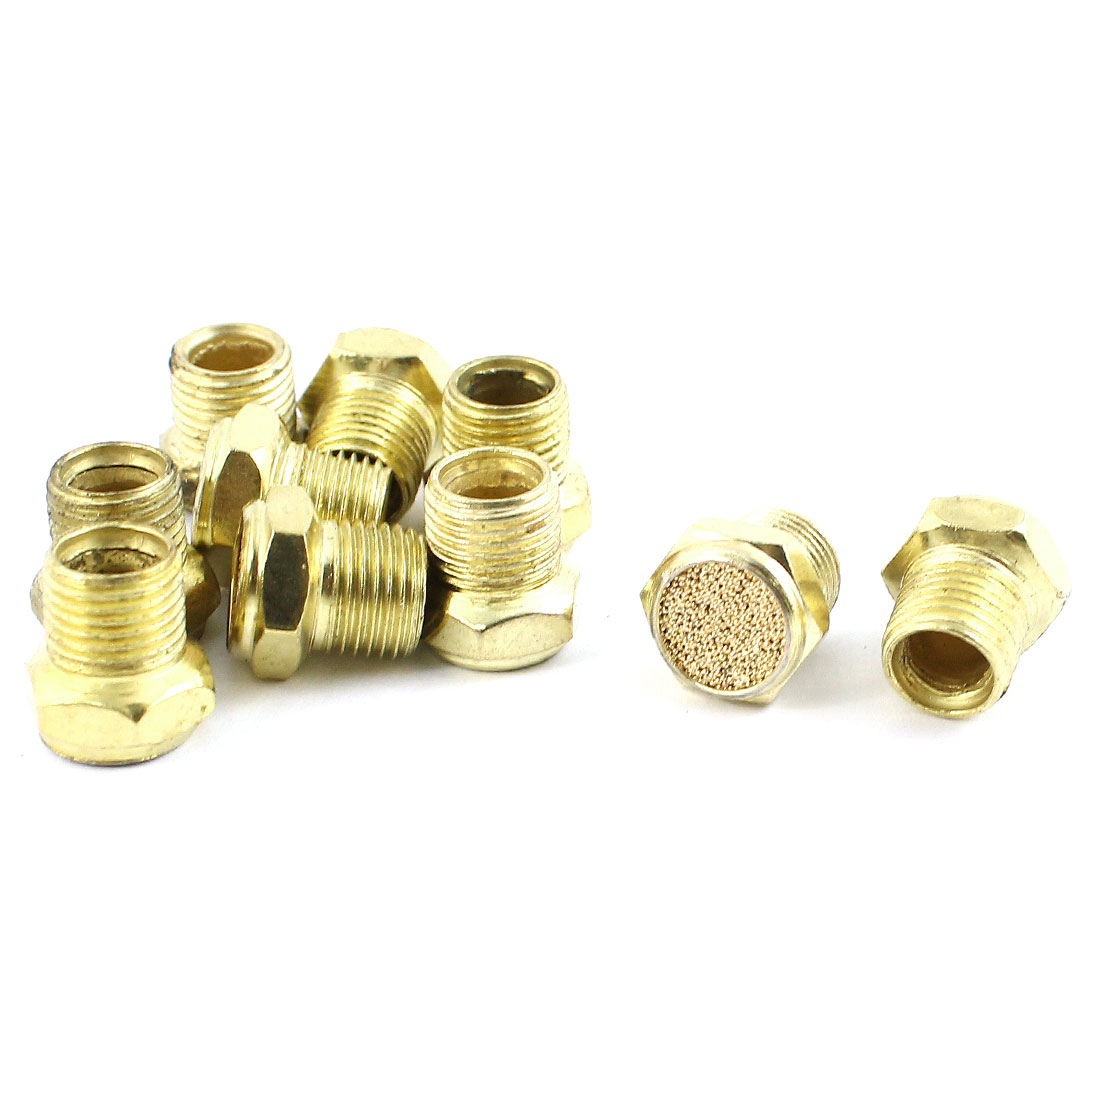 10Pcs 1/8PT Male Thread Gold Tone Sintered Solenoid Valve Pneumatic Air Filter Absorb Noise Exhaust Silencer Muffler